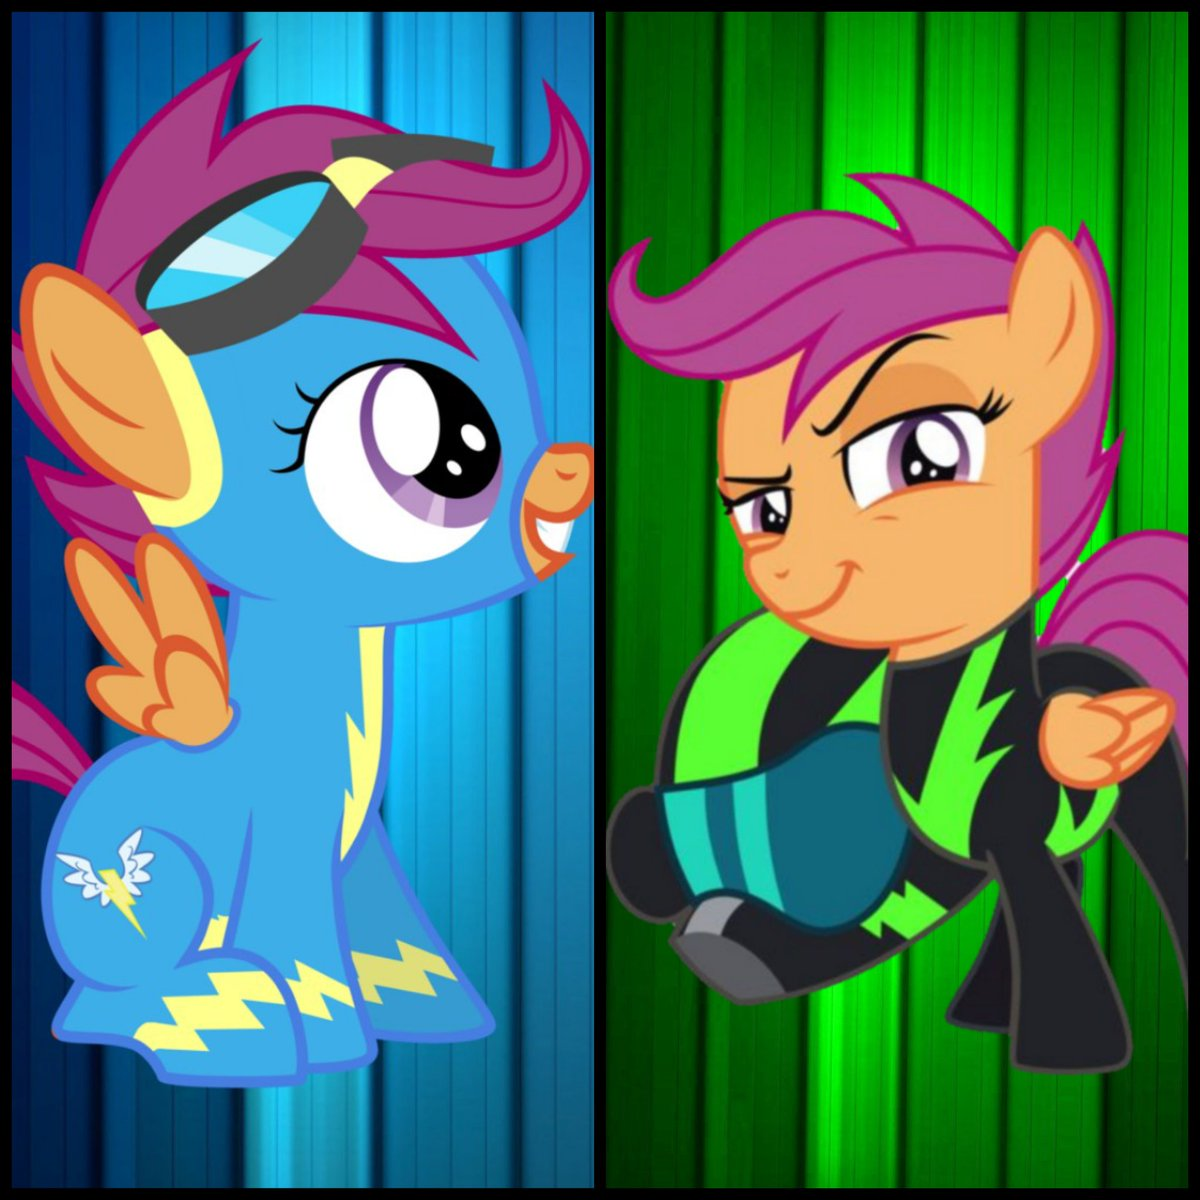 Mlp Skyline On Twitter Which Scootaloo Is Better Wonderbolt Or Washout Mlp Brony Mylittlepony Rumble, thunderlane's younger brother is a new student in scho. washout mlp brony mylittlepony